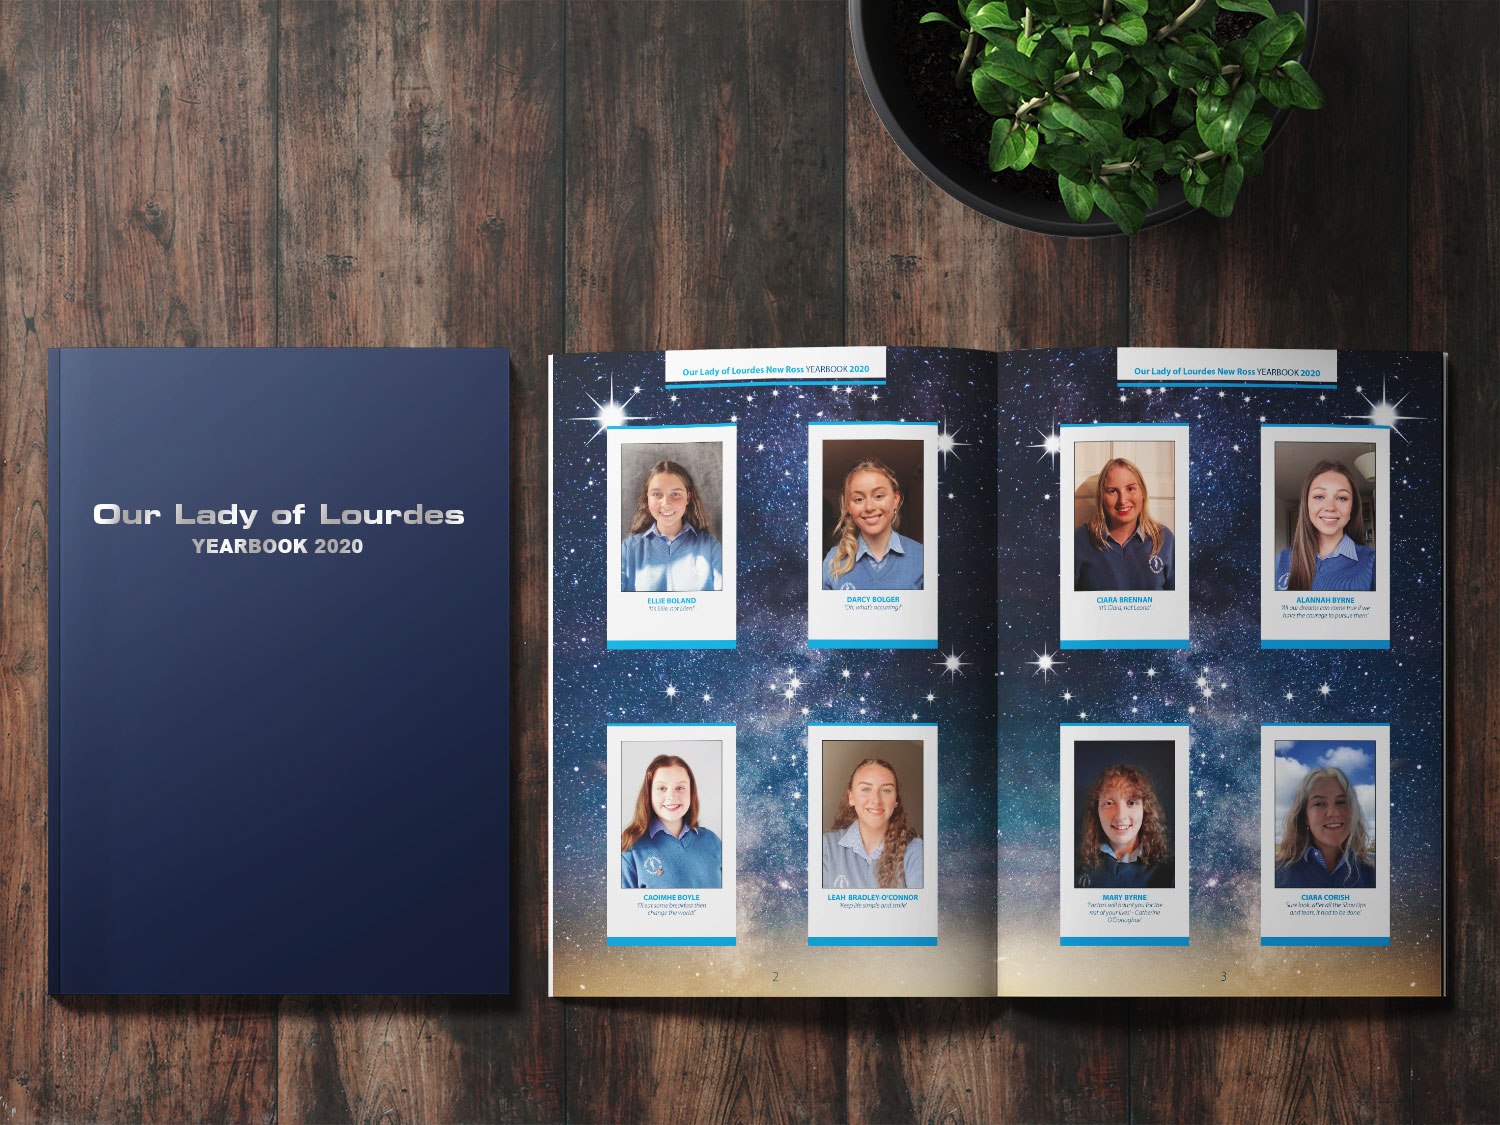 Our Lady's of Lourdes Yearbook